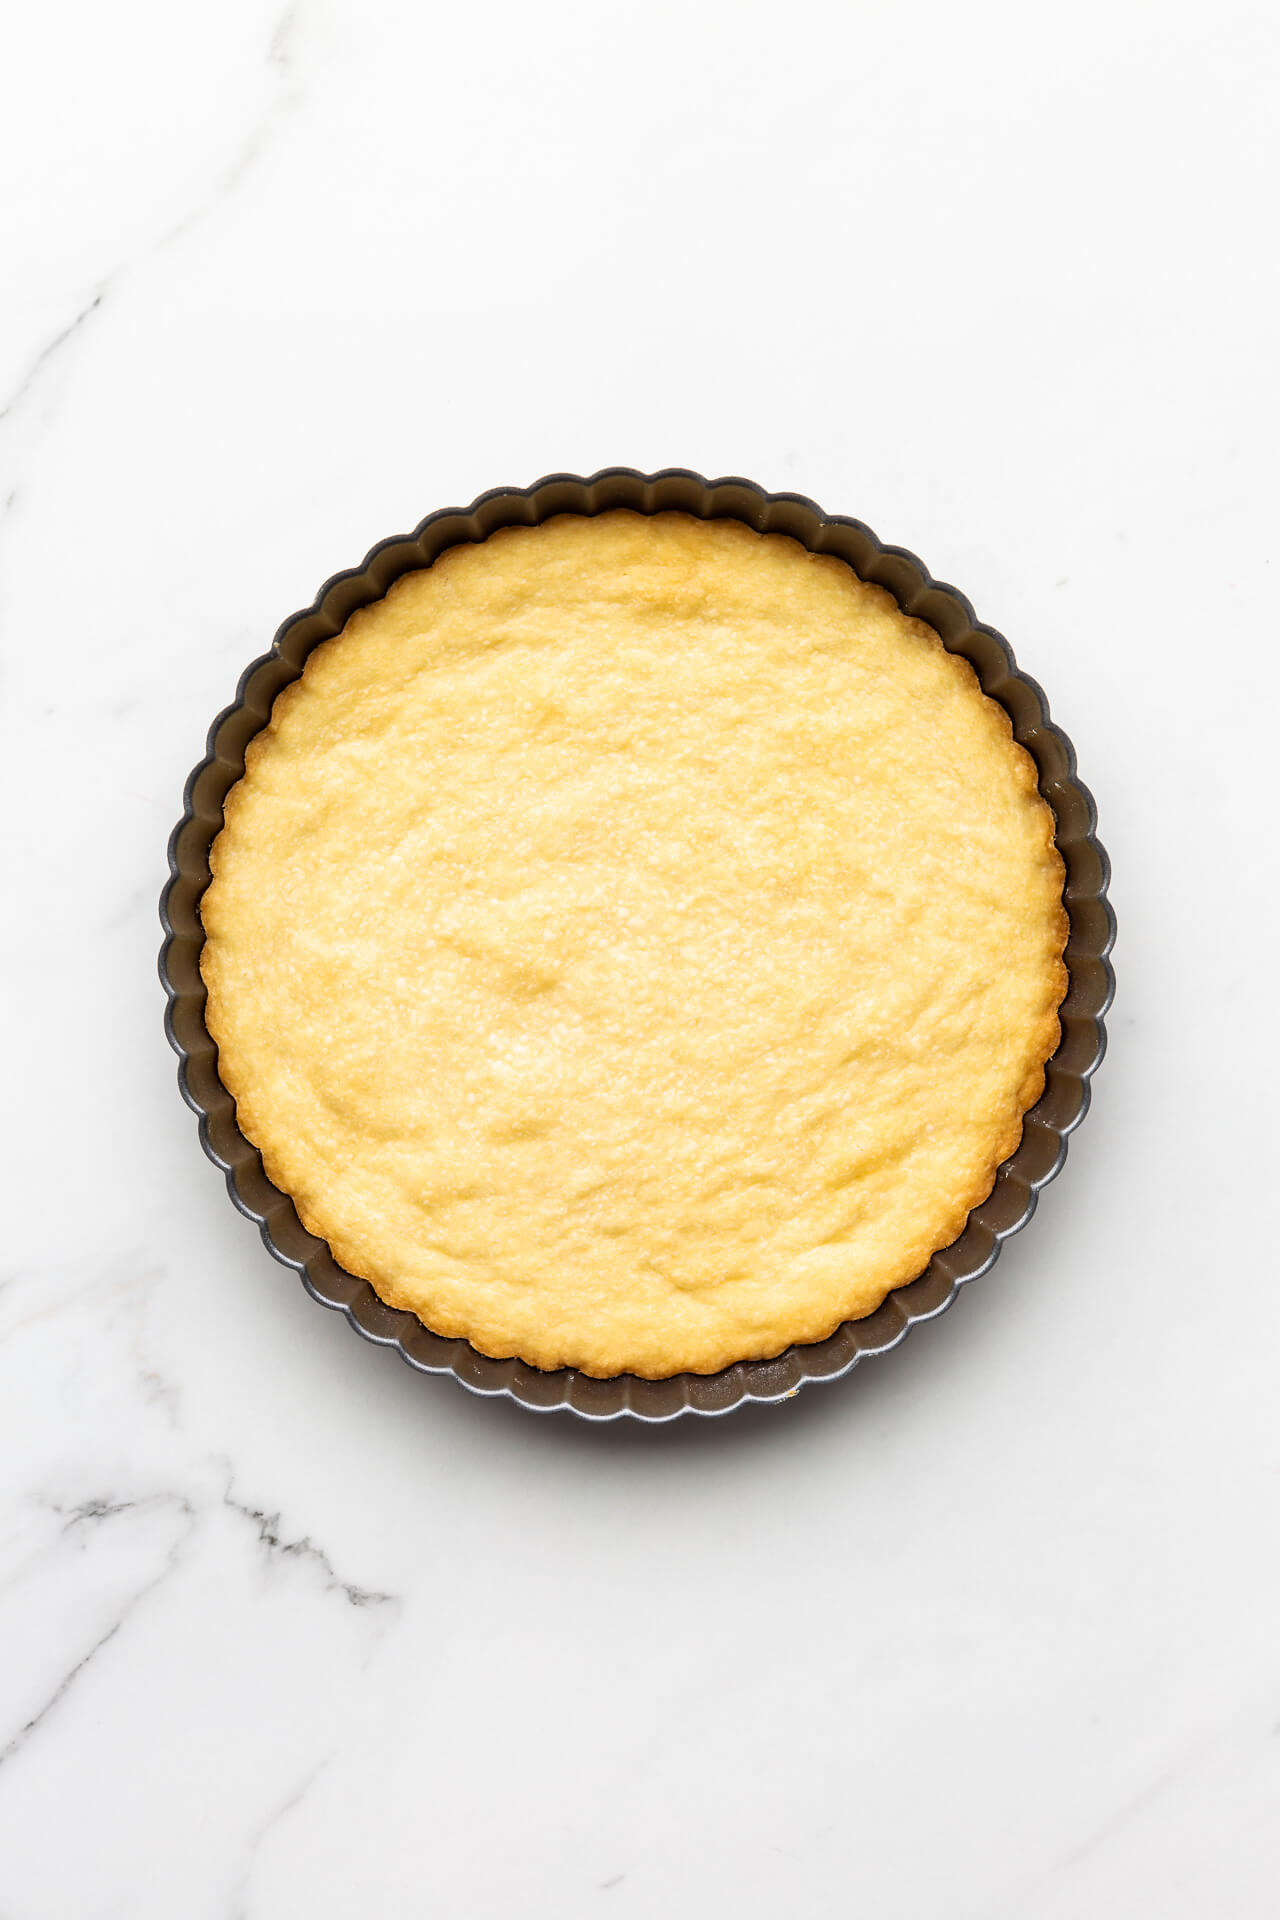 Freshly baked shortbread cookie baked in a fluted tart pan for a crinkly edge